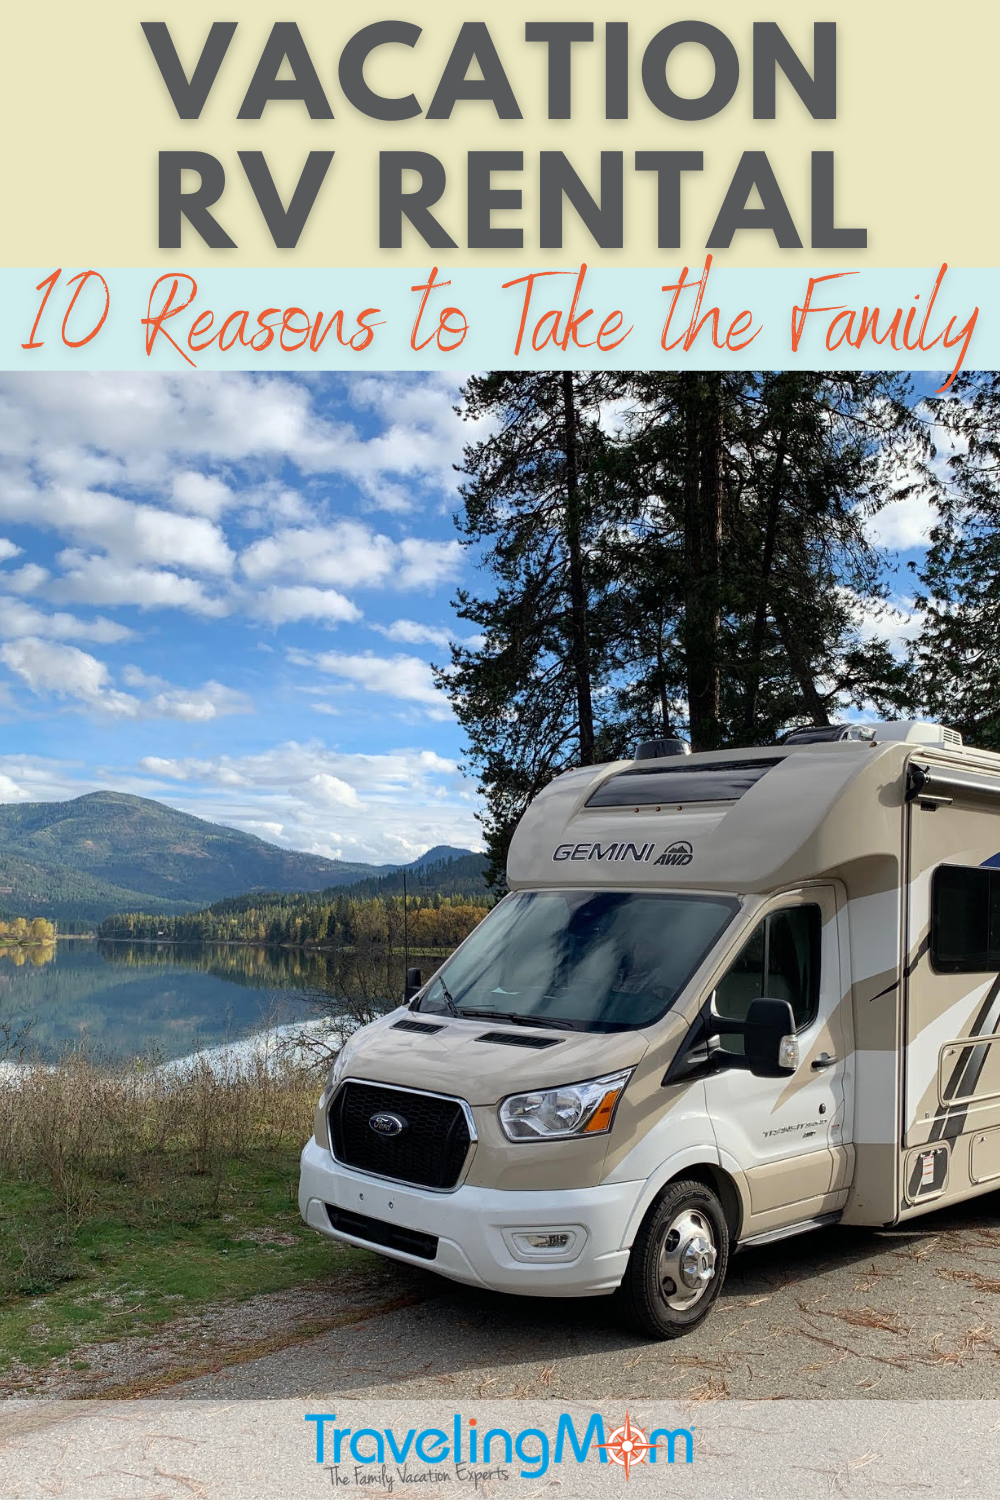 rv against backdrop of mountains and lakes